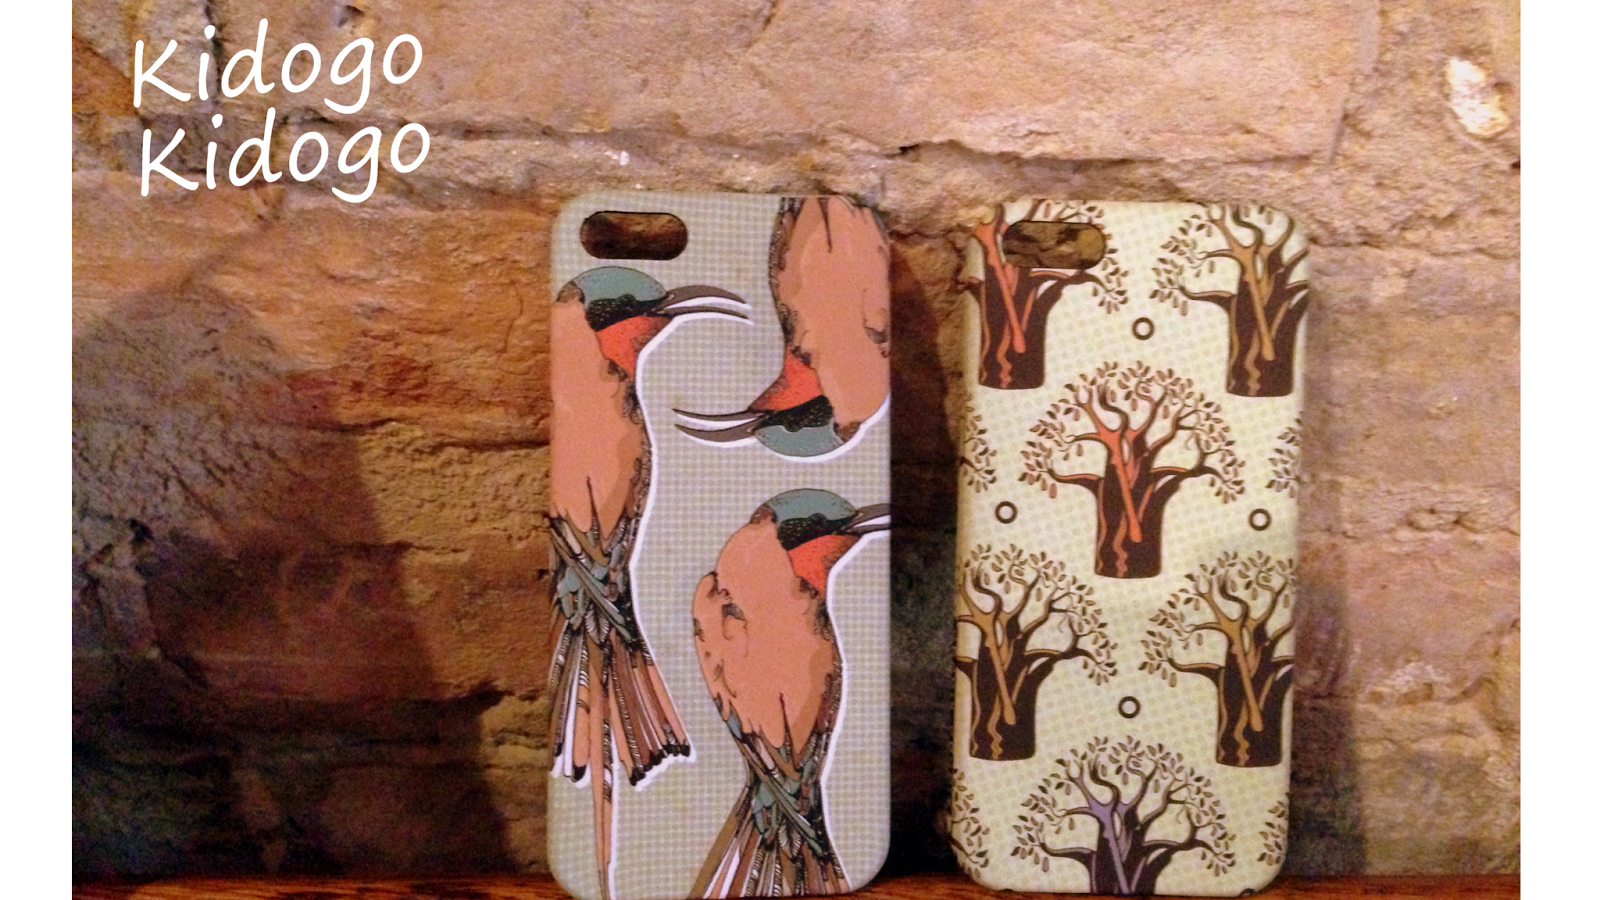 Kidogo Kidogo, iPhone case, give back